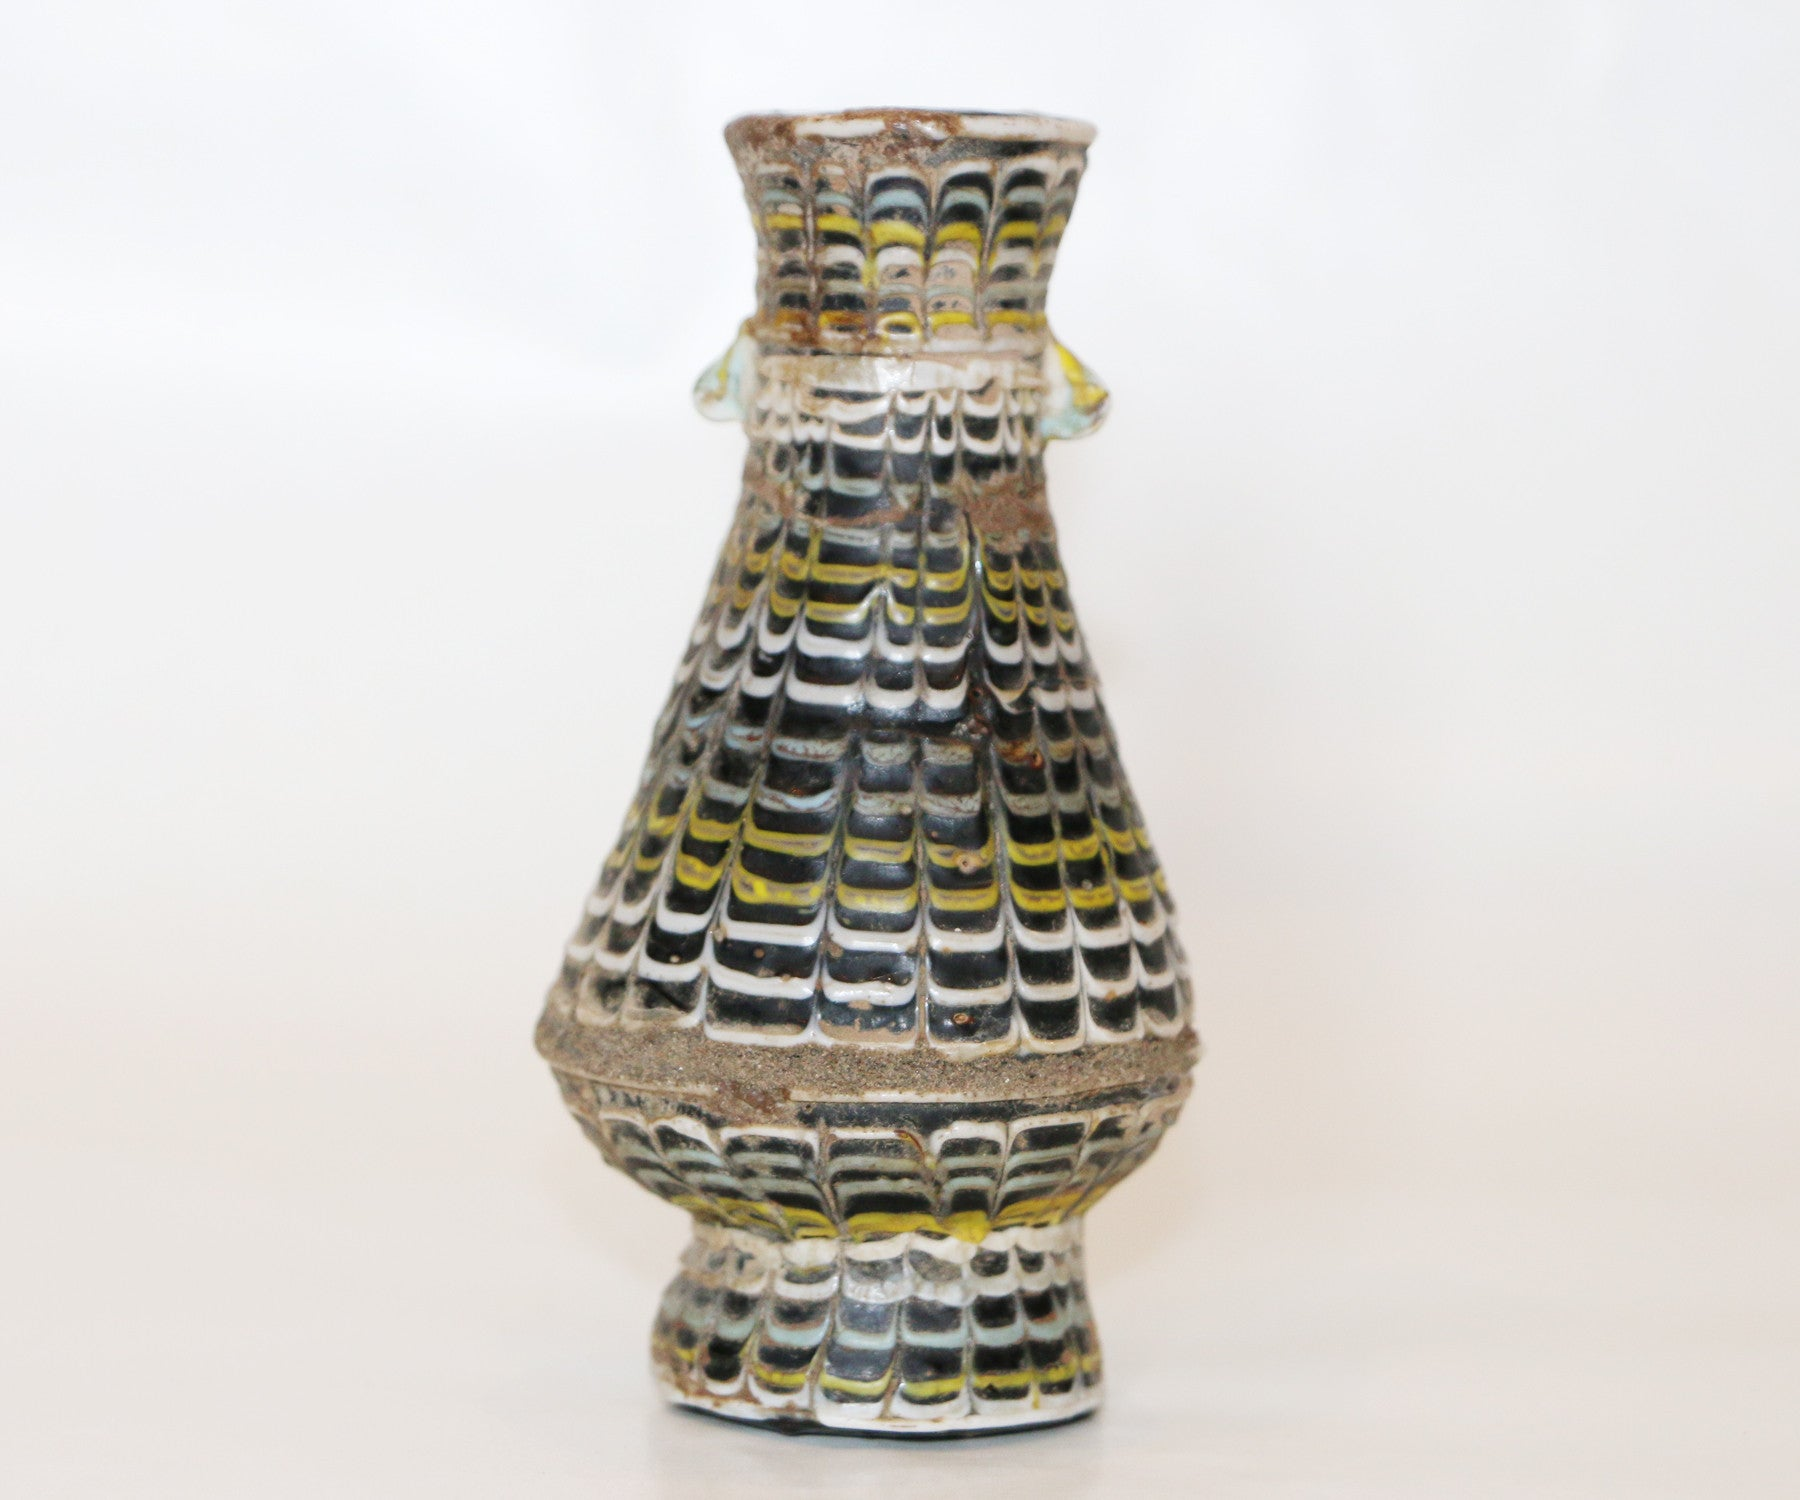 Glass Amphoriskos (perfume bottle) - Tibet Arts & Healing